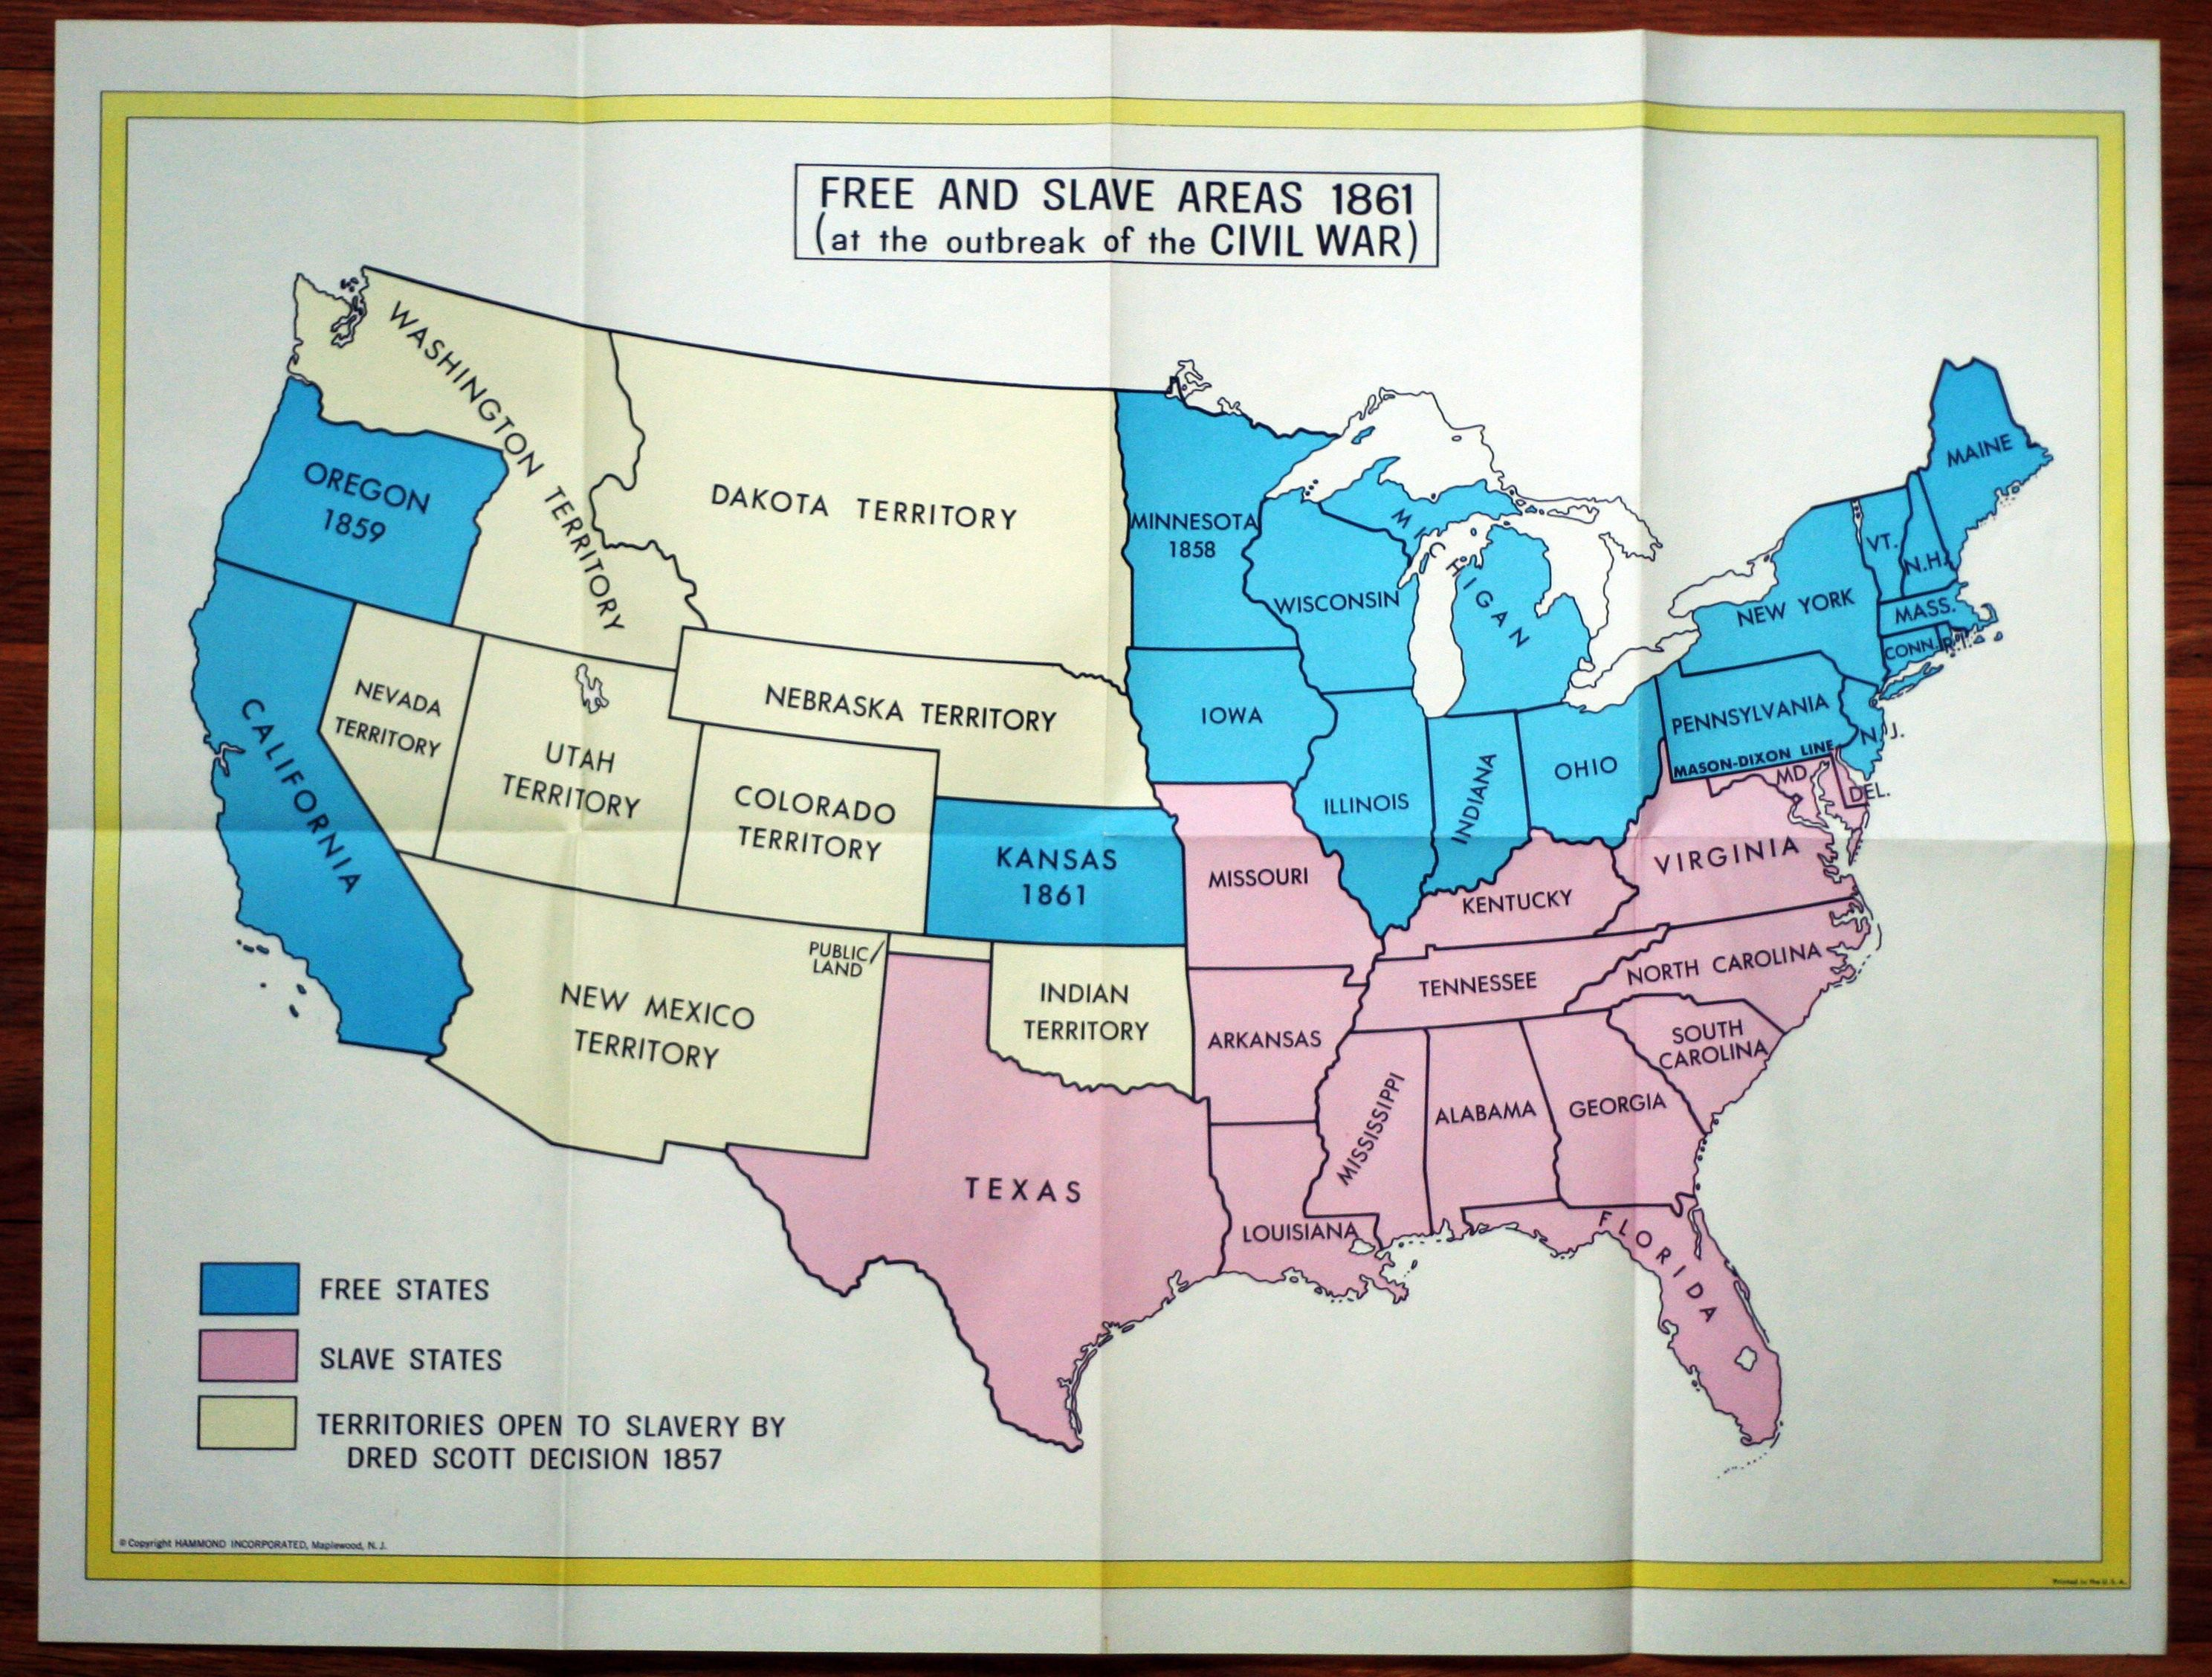 Mason Dixon Line As Of 1861 Map Of The Us School Ideas War - Map-of-the-us-in-1861